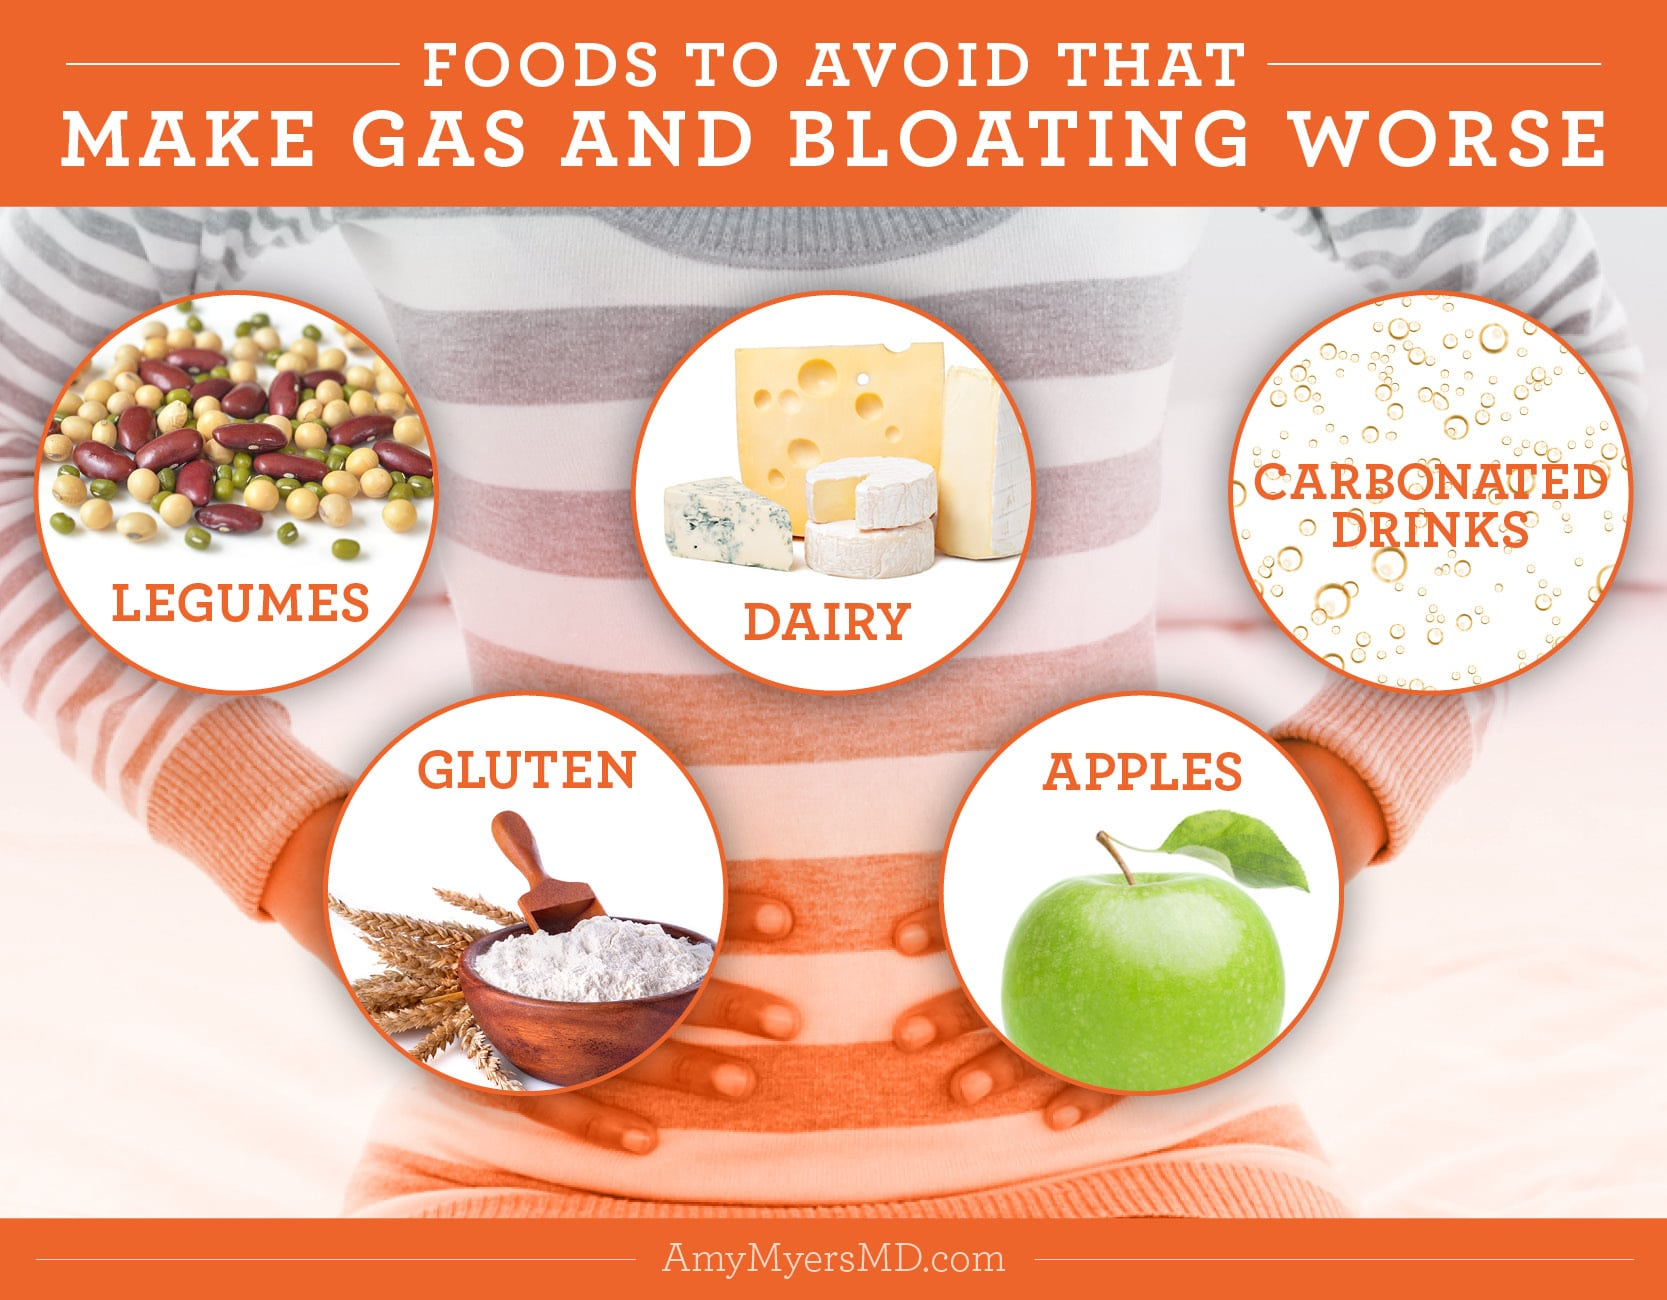 Foods to Avoid That Make Gas and Bloating Worse - Infographic - Amy Myers MD